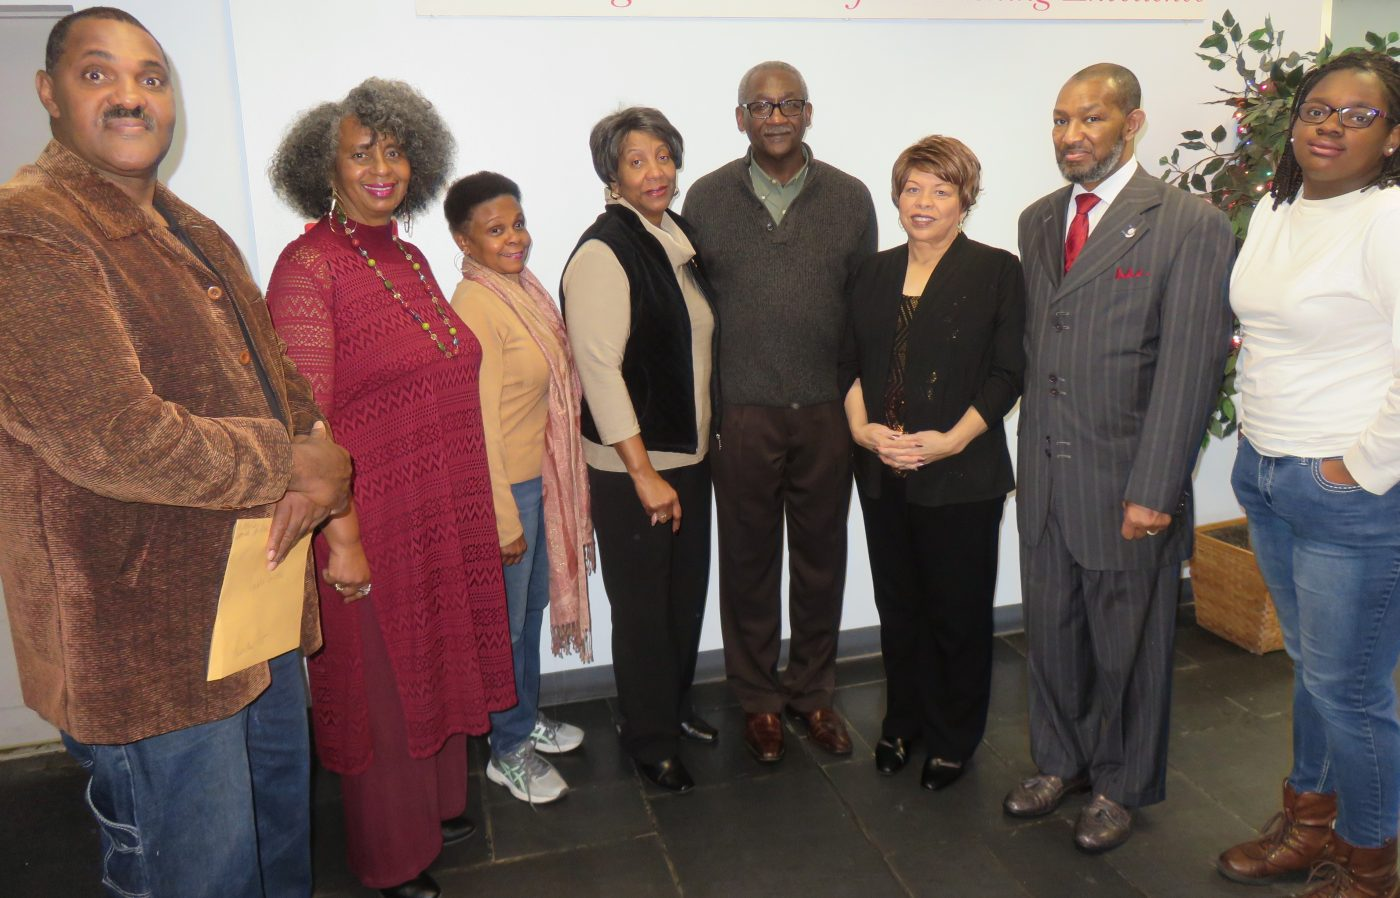 Mlk Association Plans Events To Honor Legacy Of Civil